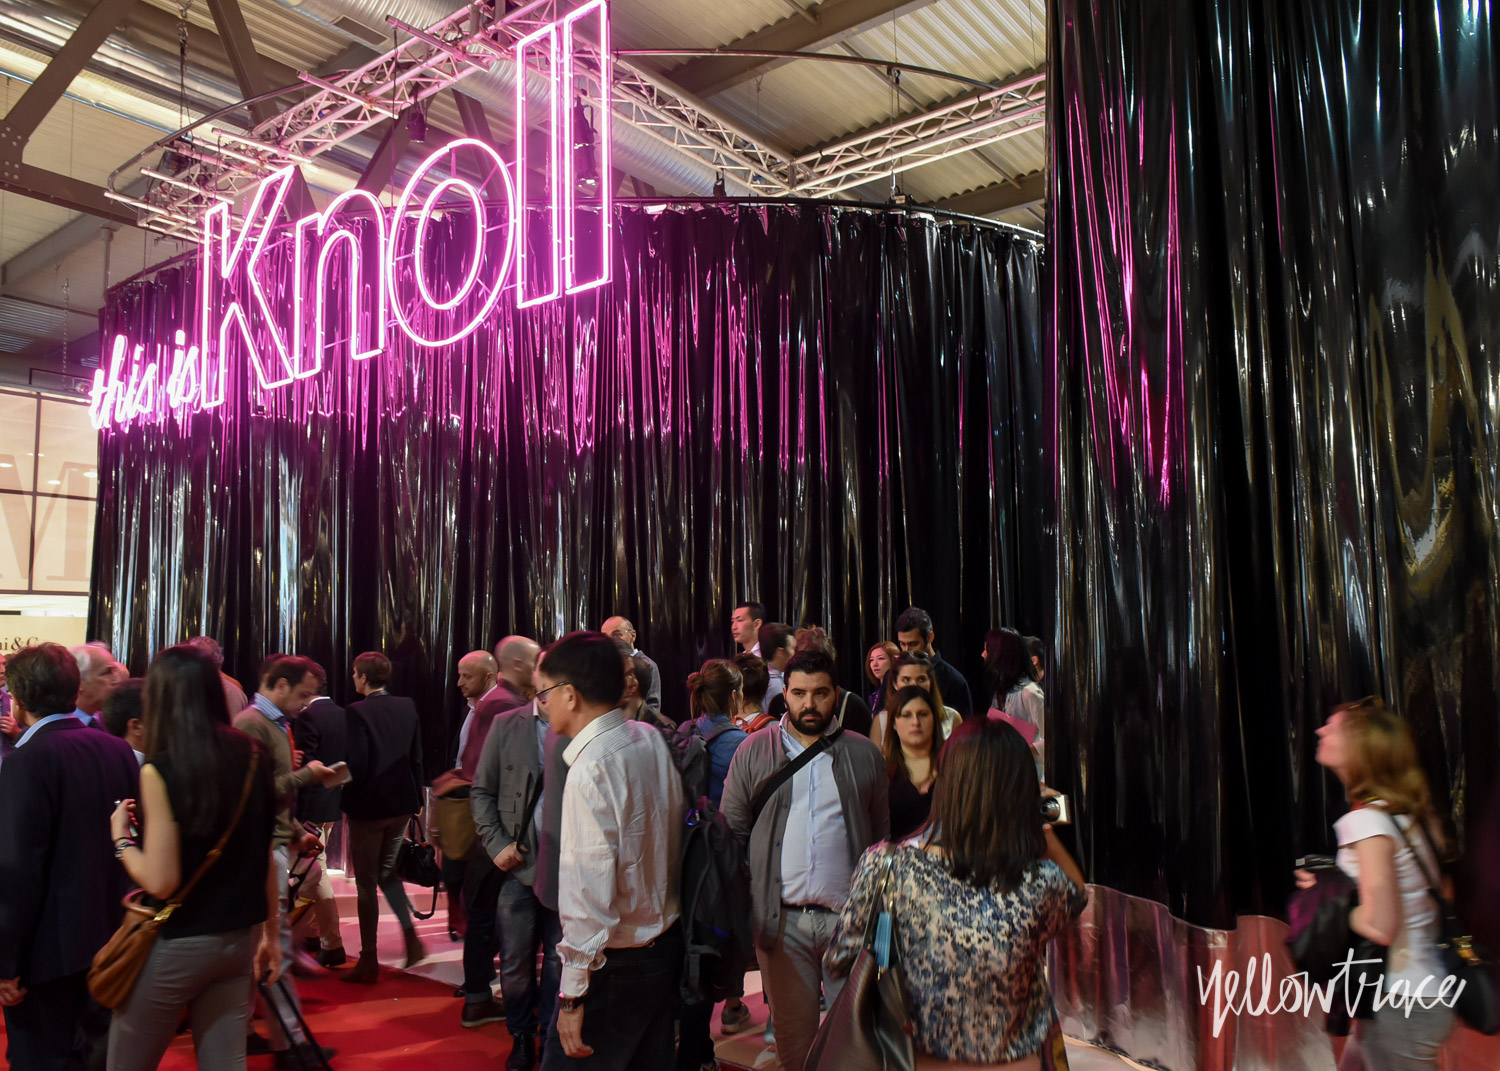 Knoll Stand at Salone Internazionale del Mobile - Photo Nick Hughes / Yellowtrace